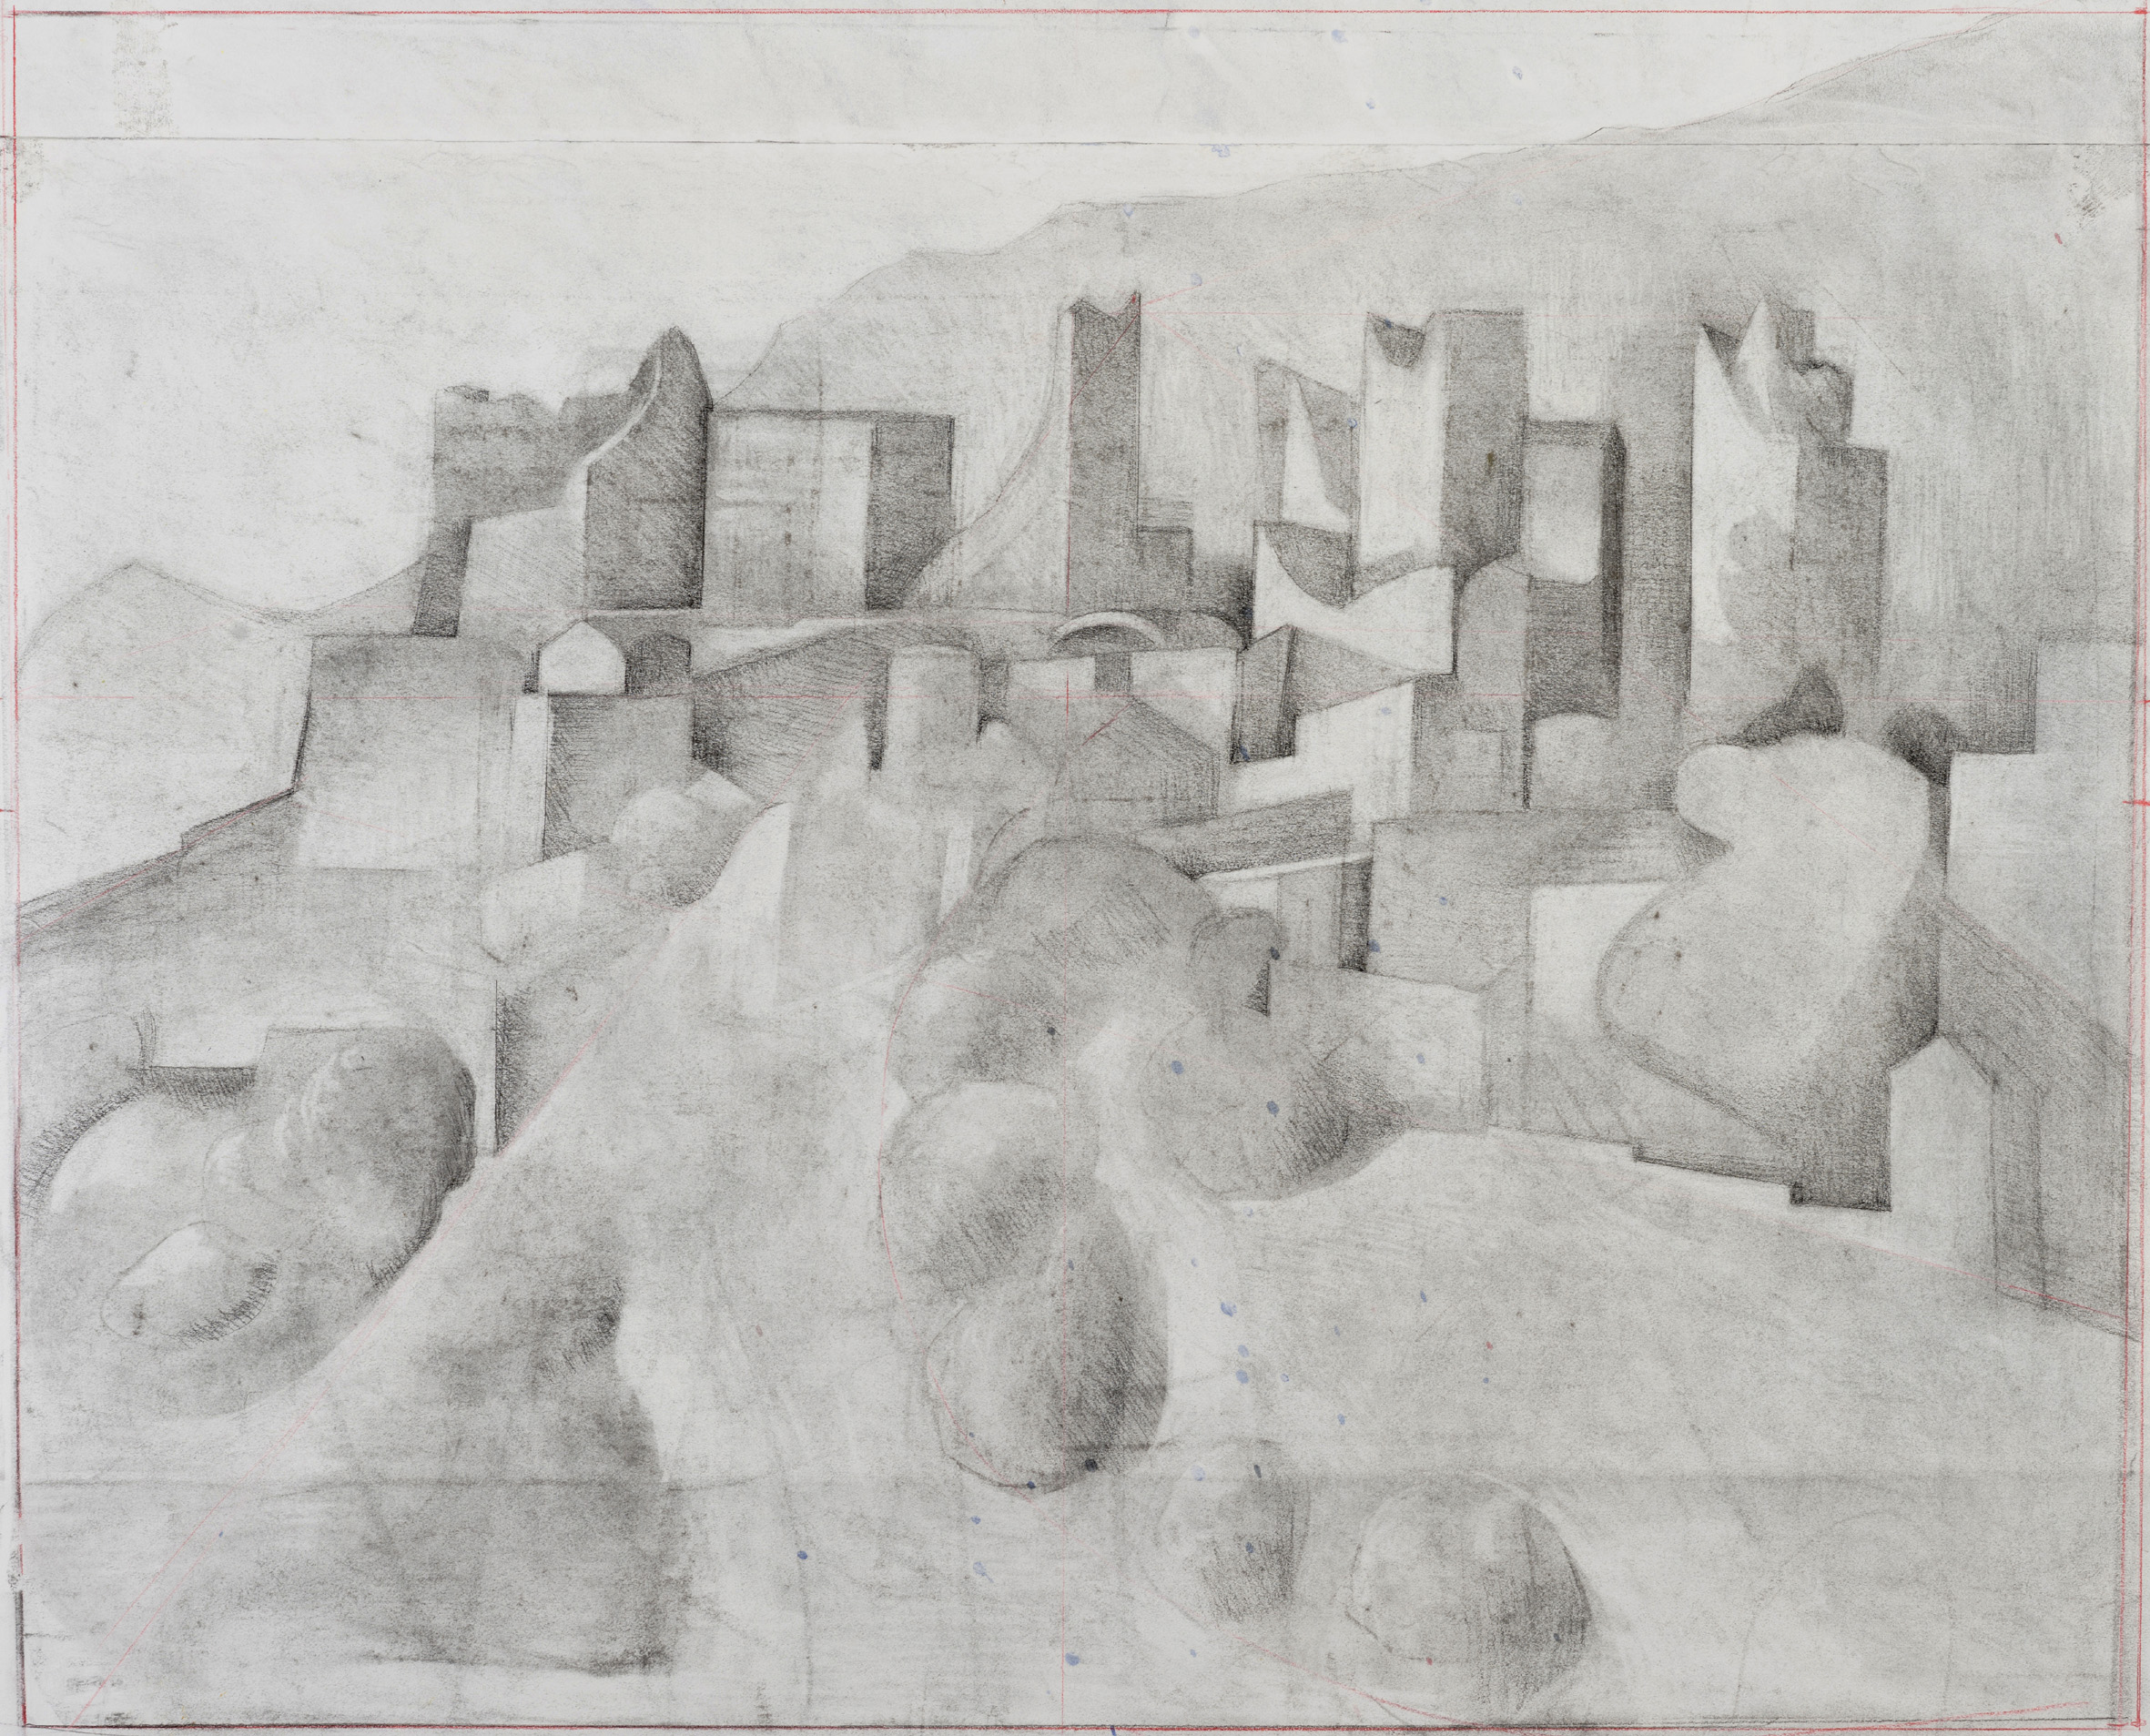 'The old hornet's nest - Vatheia' pencil and charcoal on paper 61 x 75cm